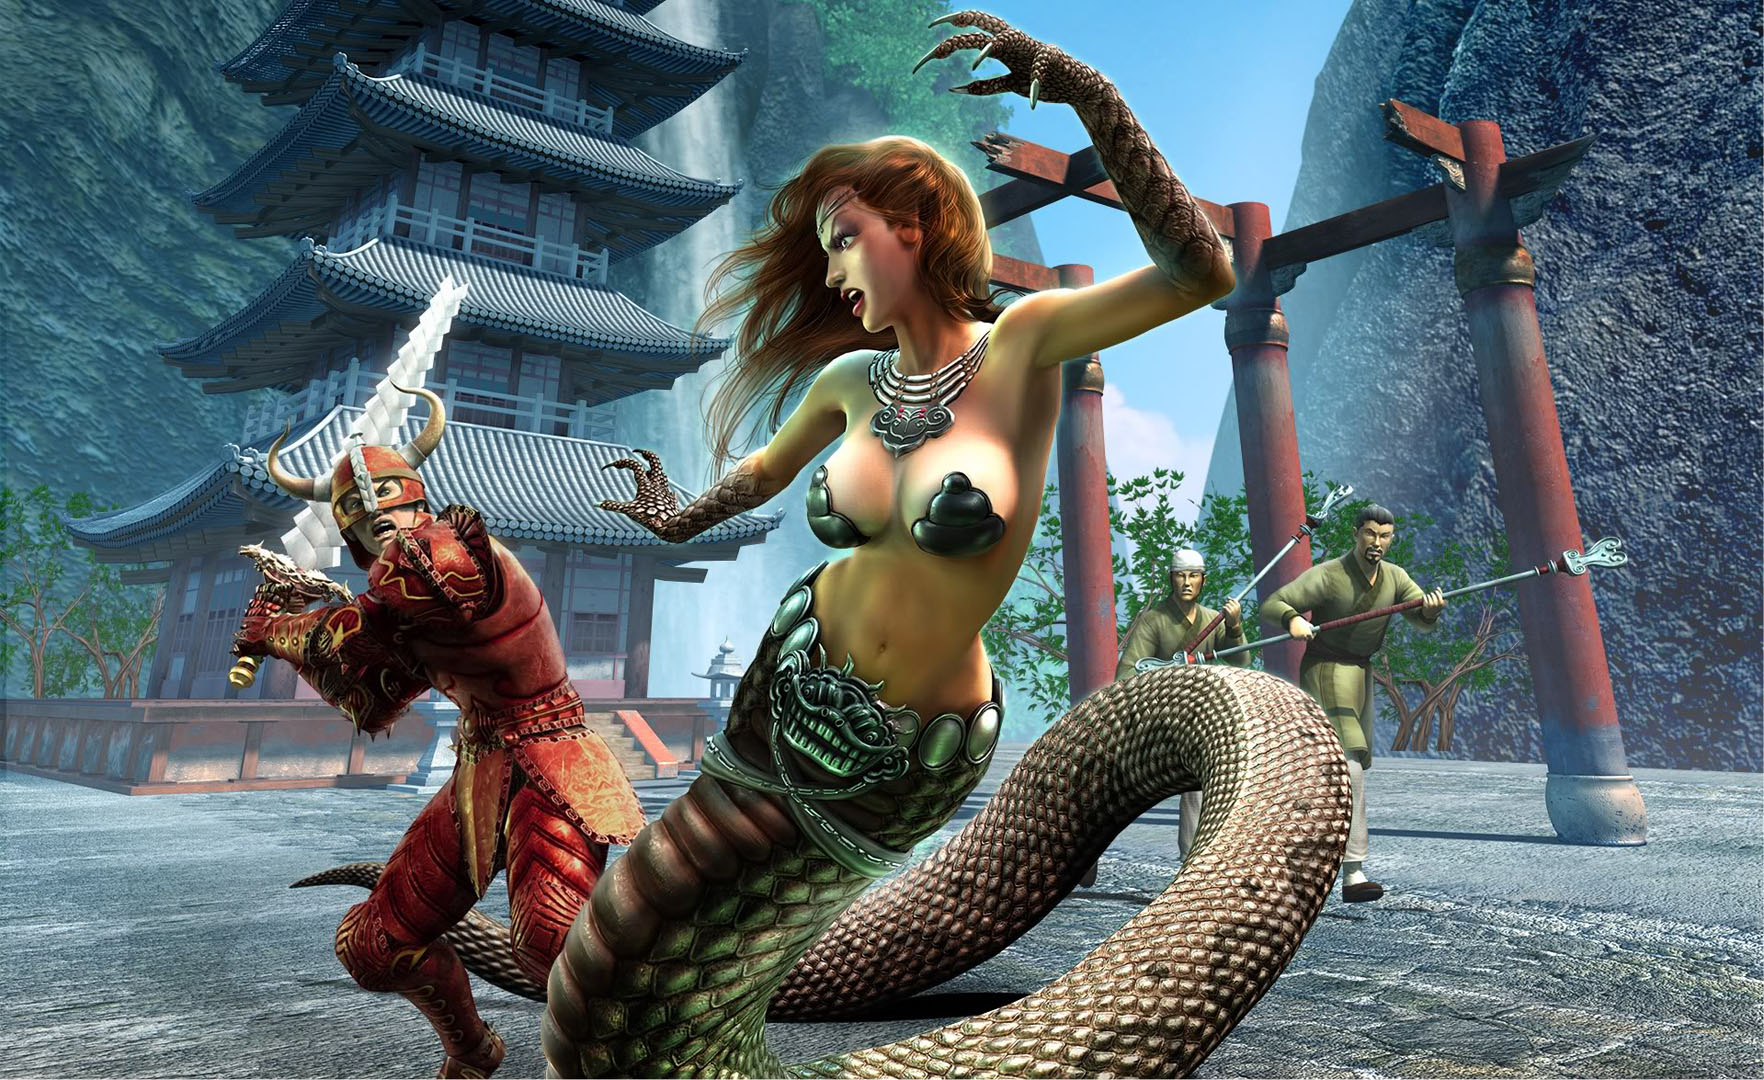 Warrior And Snake Woman